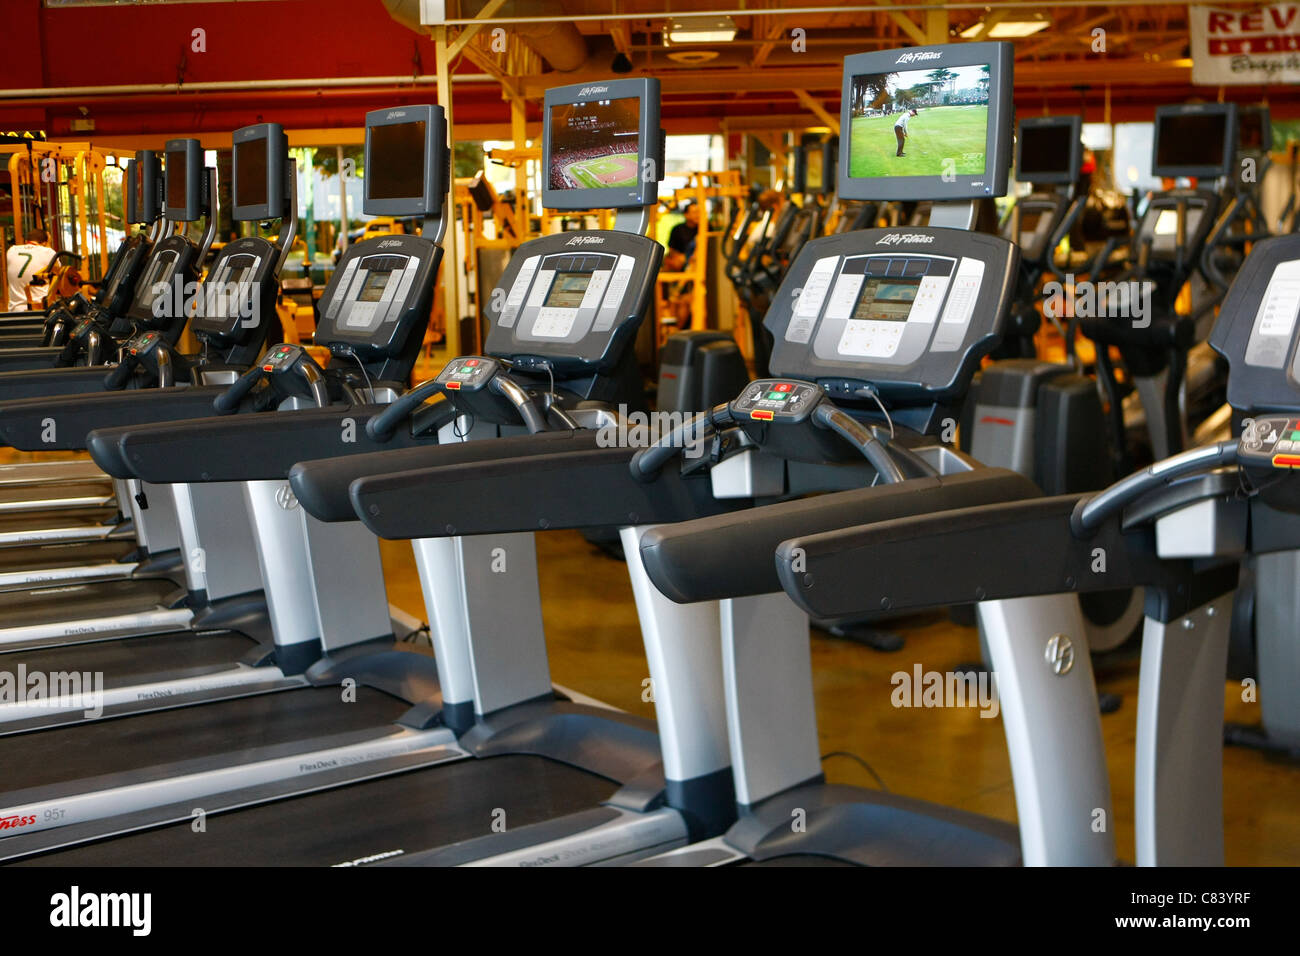 treadmills and cadio exercise equipment in a gym - Stock Image